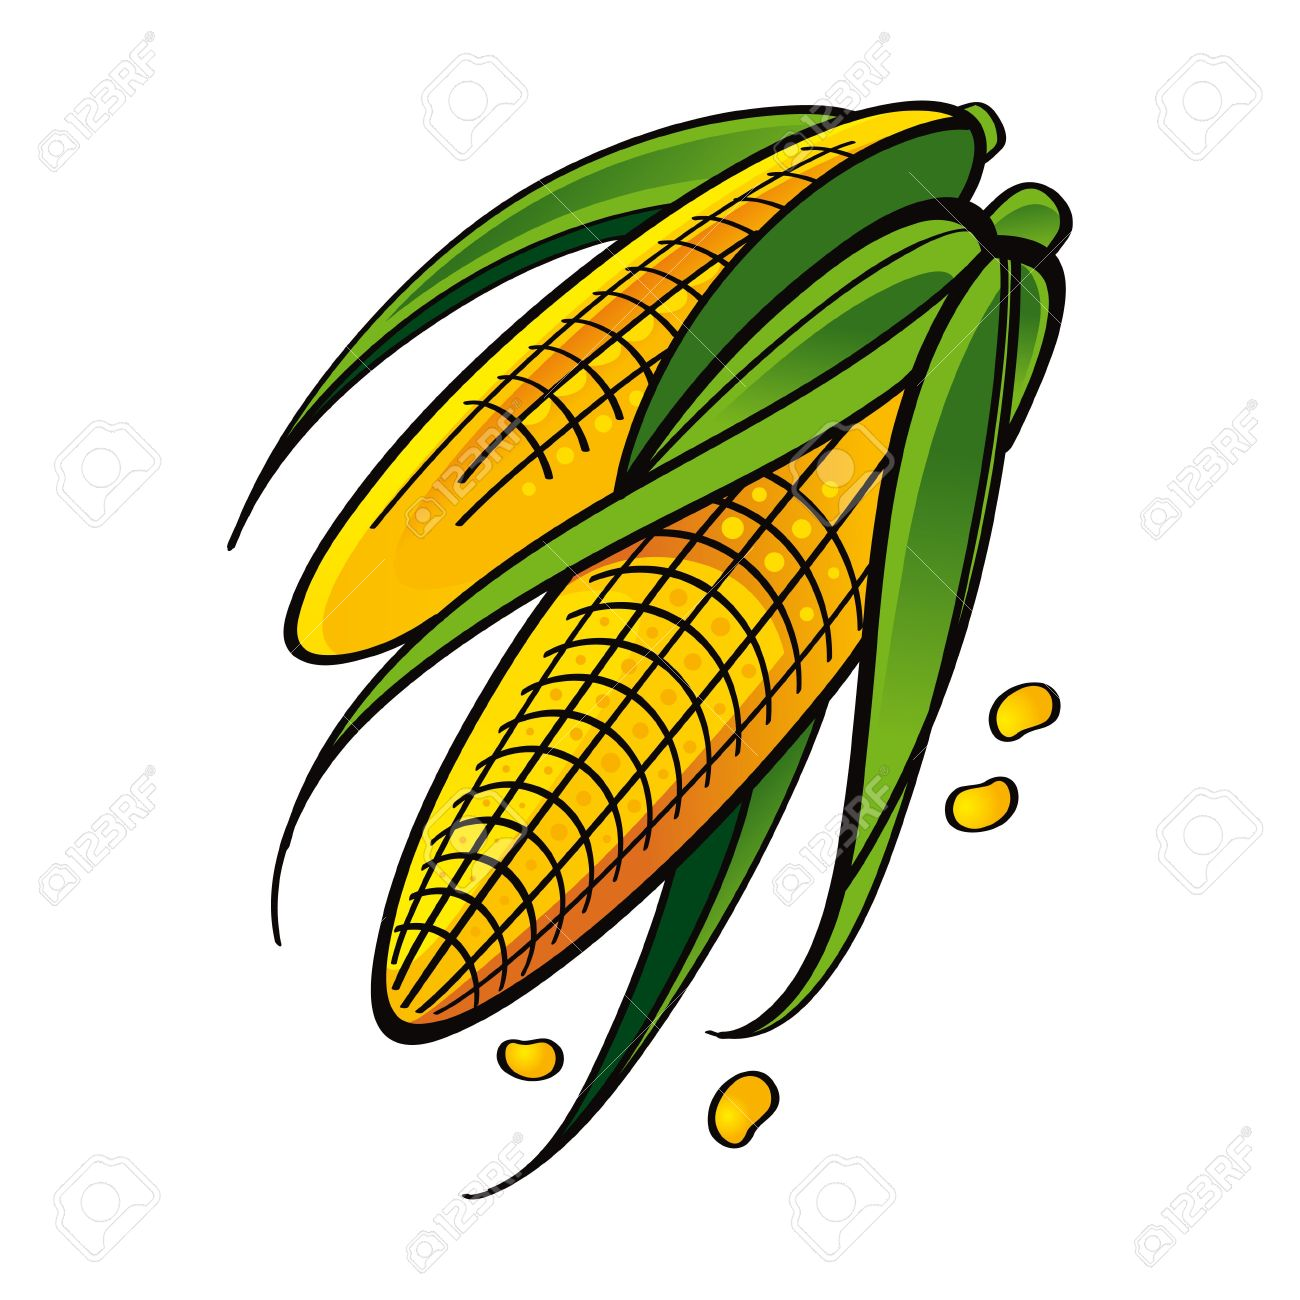 Yellow Corn With Leaves Seed Vegetable Food Market Garden Harvest.